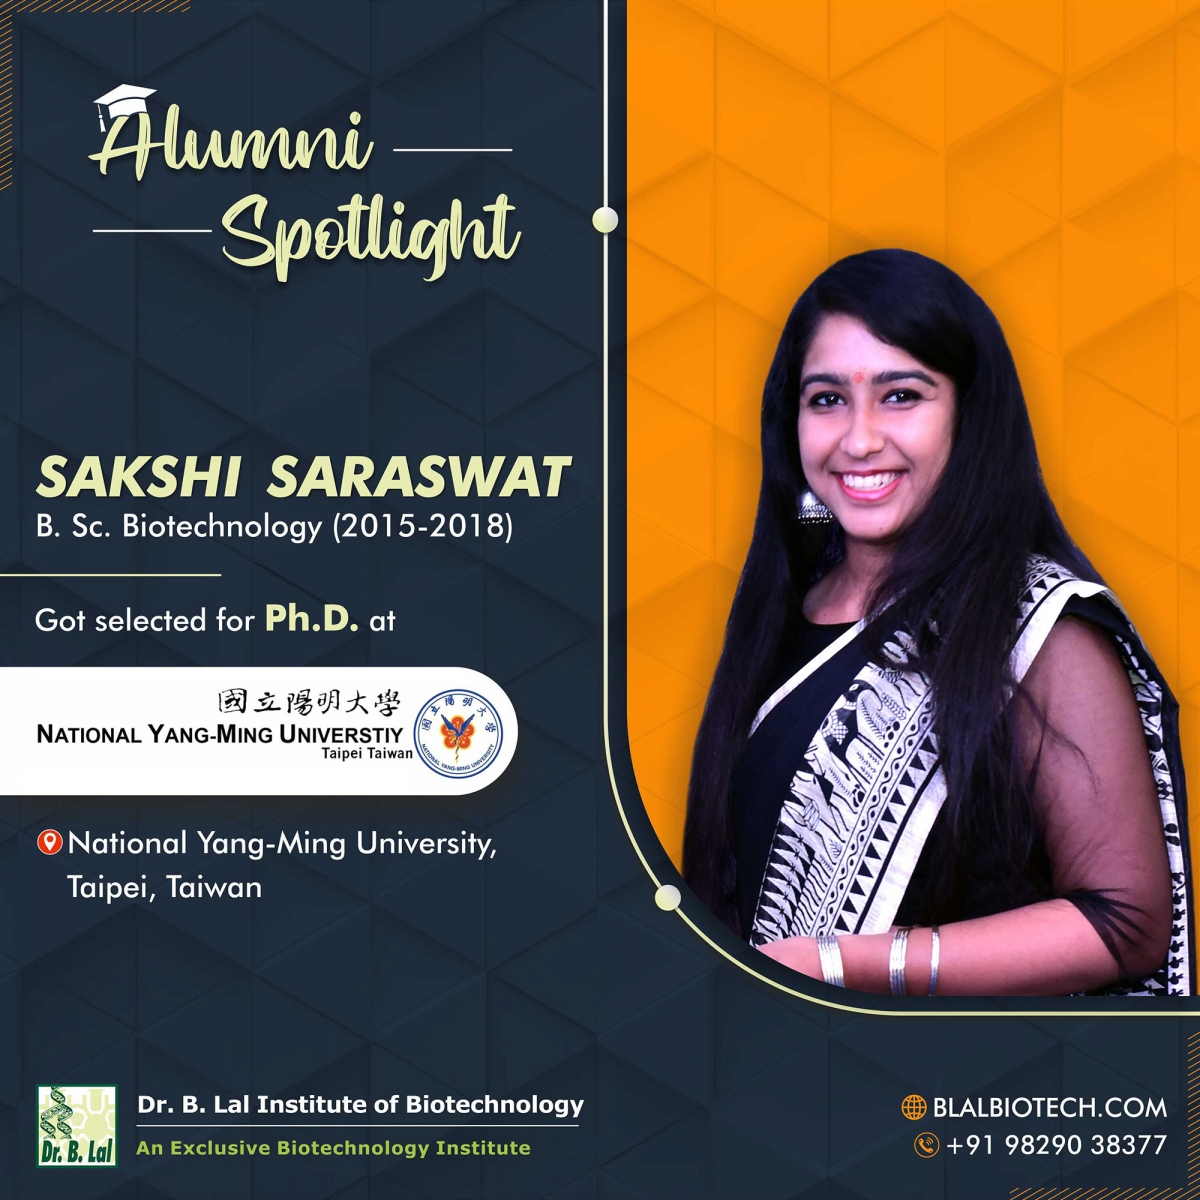 Ms. Sakshi Saraswat | Selected for Ph.D. at National Yang-Ming University, Taipei, Taiwan